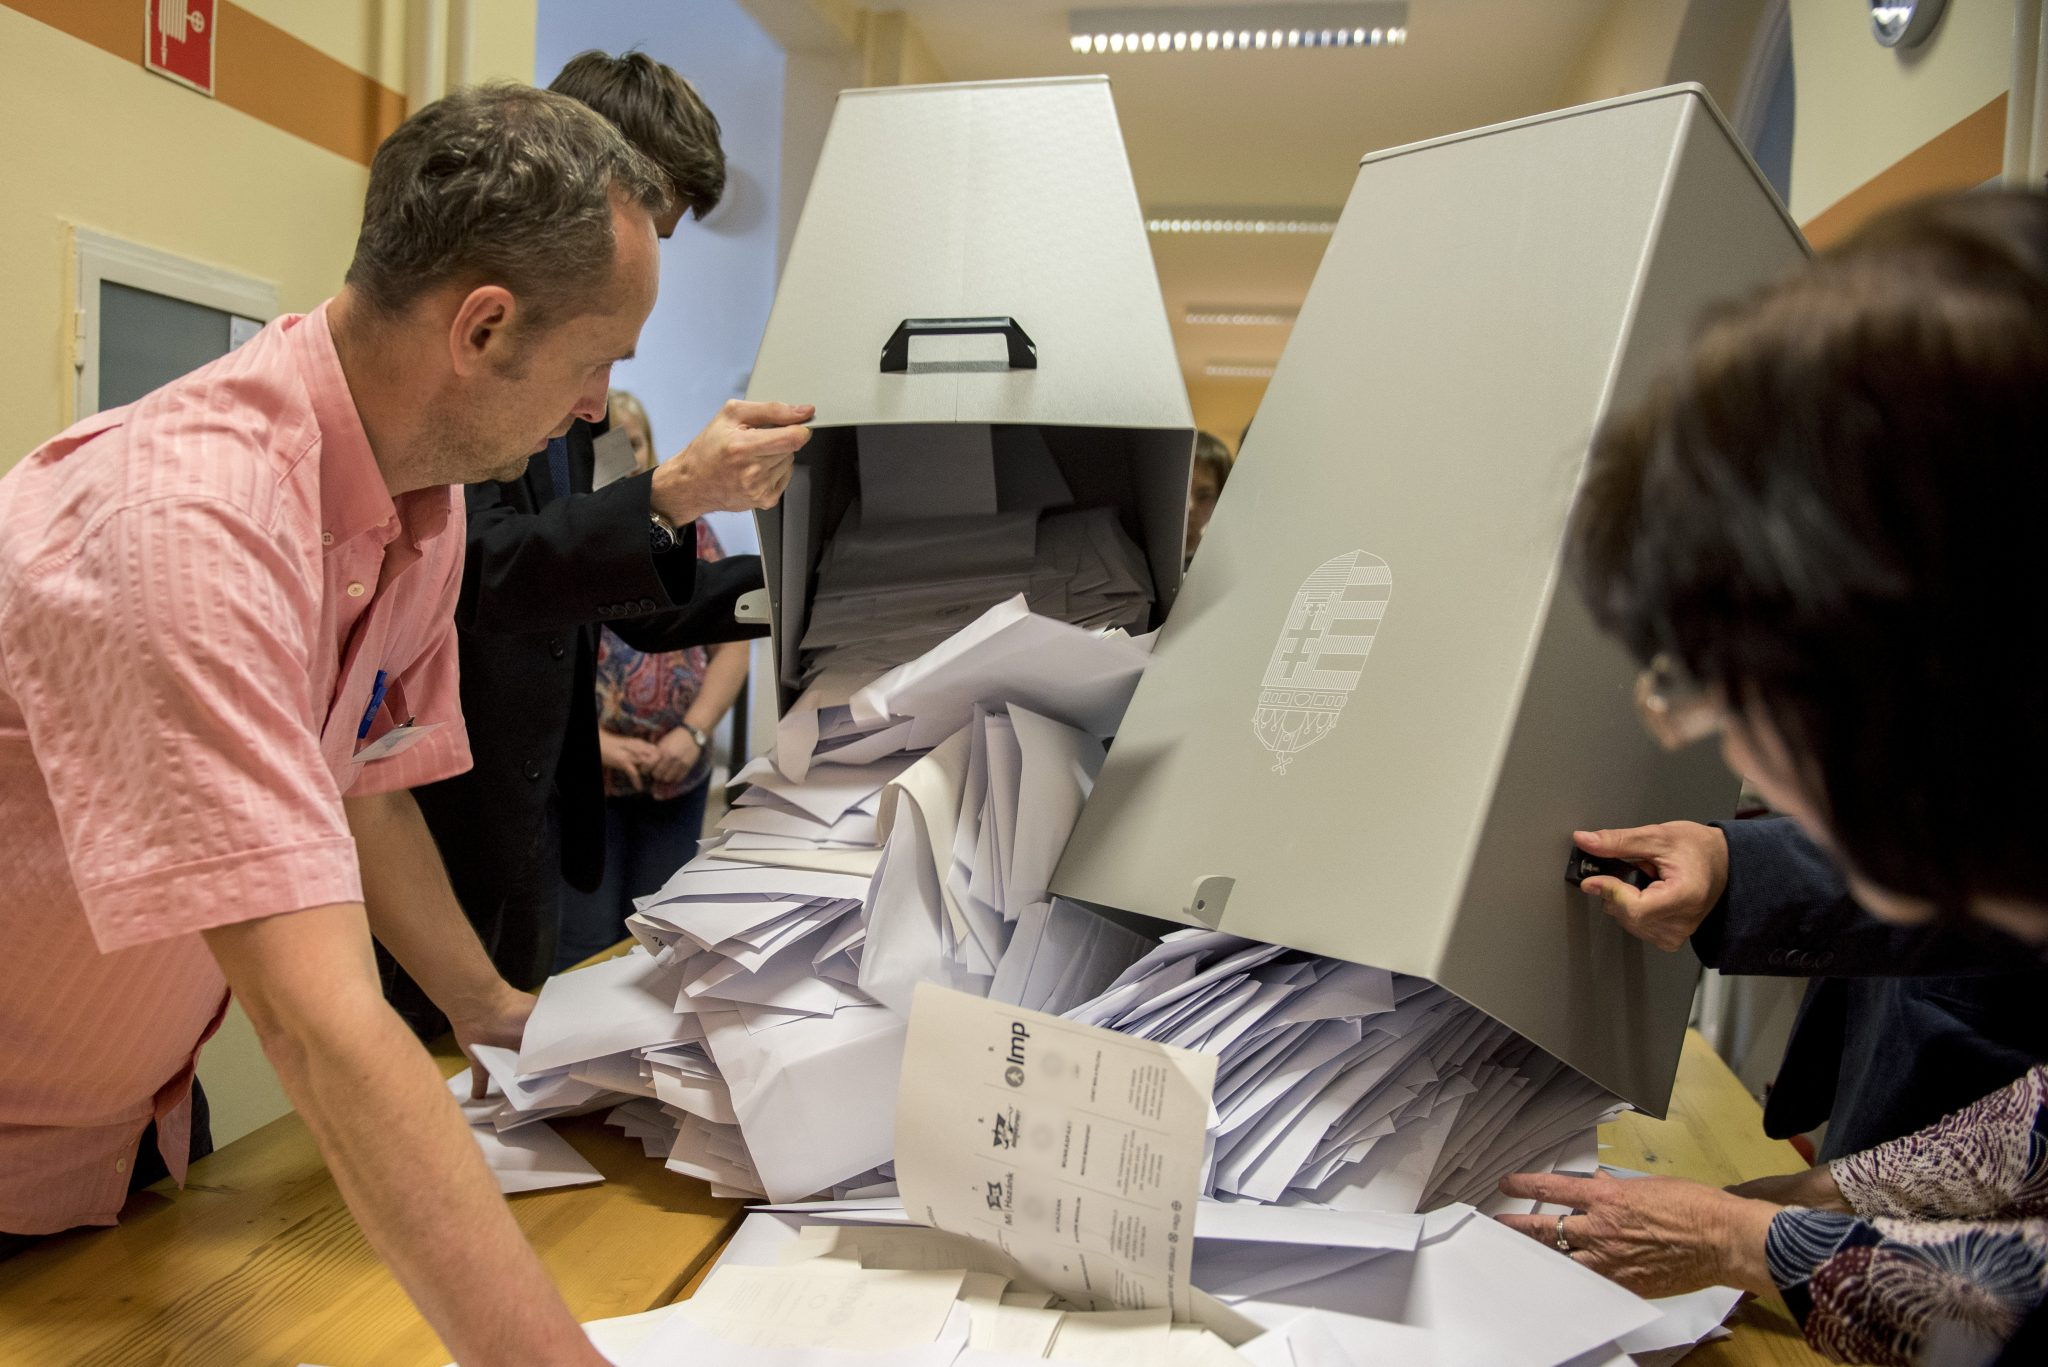 Budapest: Tarlós Leads but Close Finish Expected by Pollsters post's picture